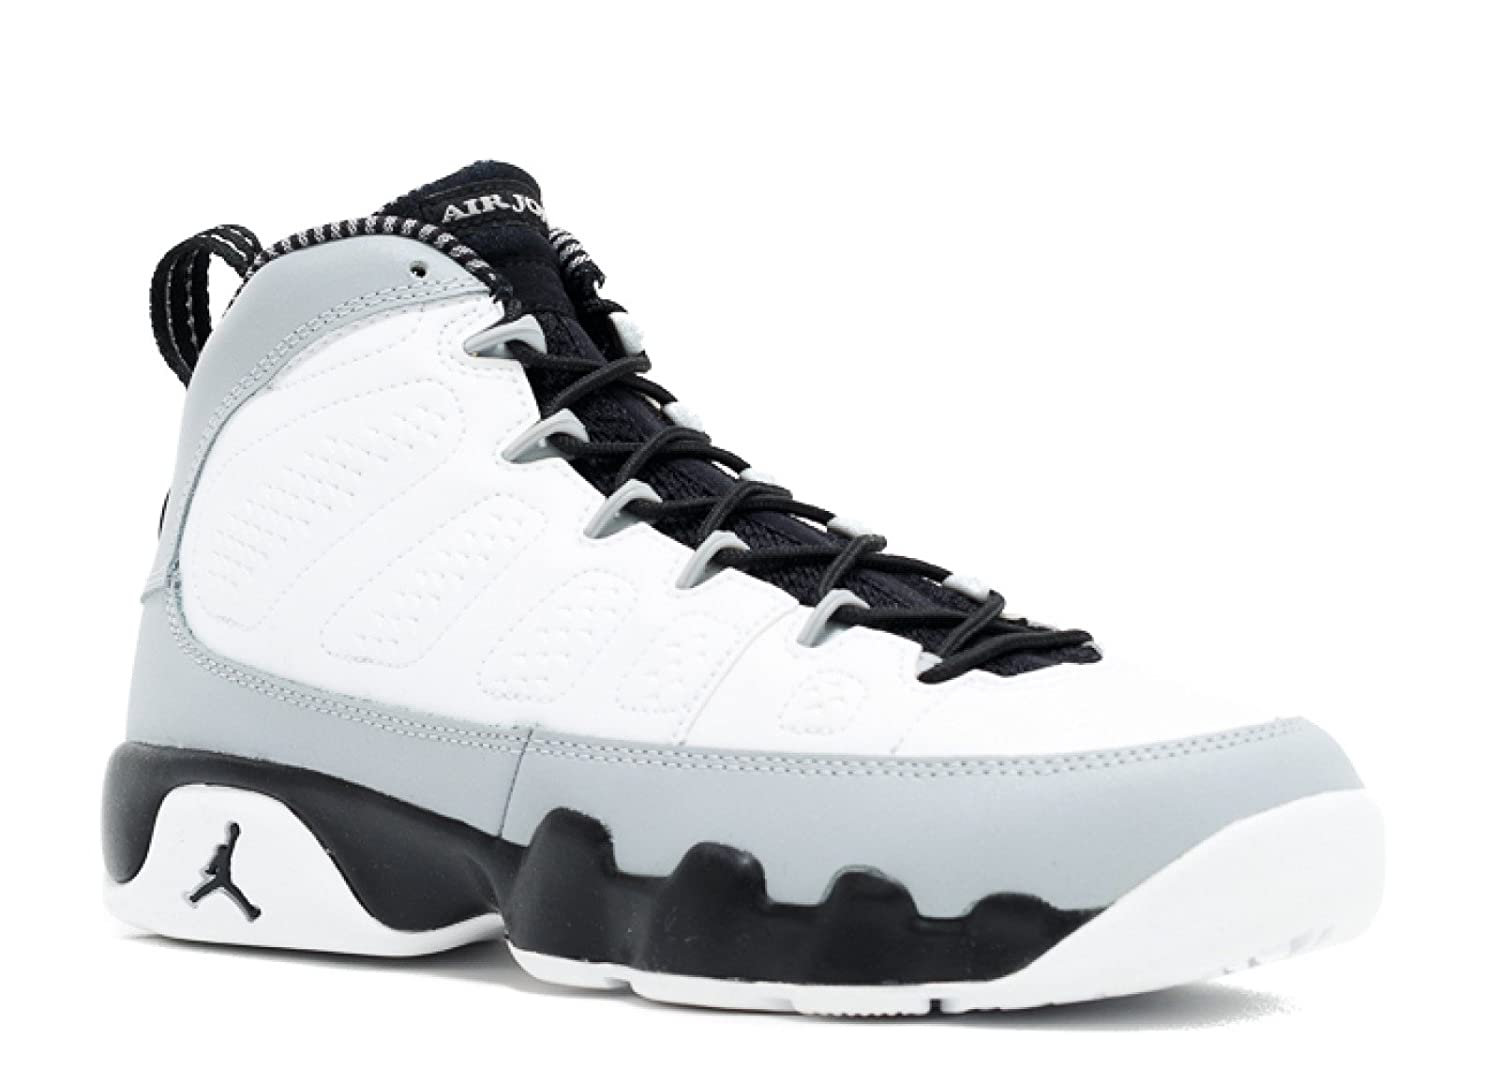 newest collection 0d63e fedf6 Amazon.com   Nike Boys Air Jordan 9 Retro BG Barons Leather Basketball  Shoes   Basketball